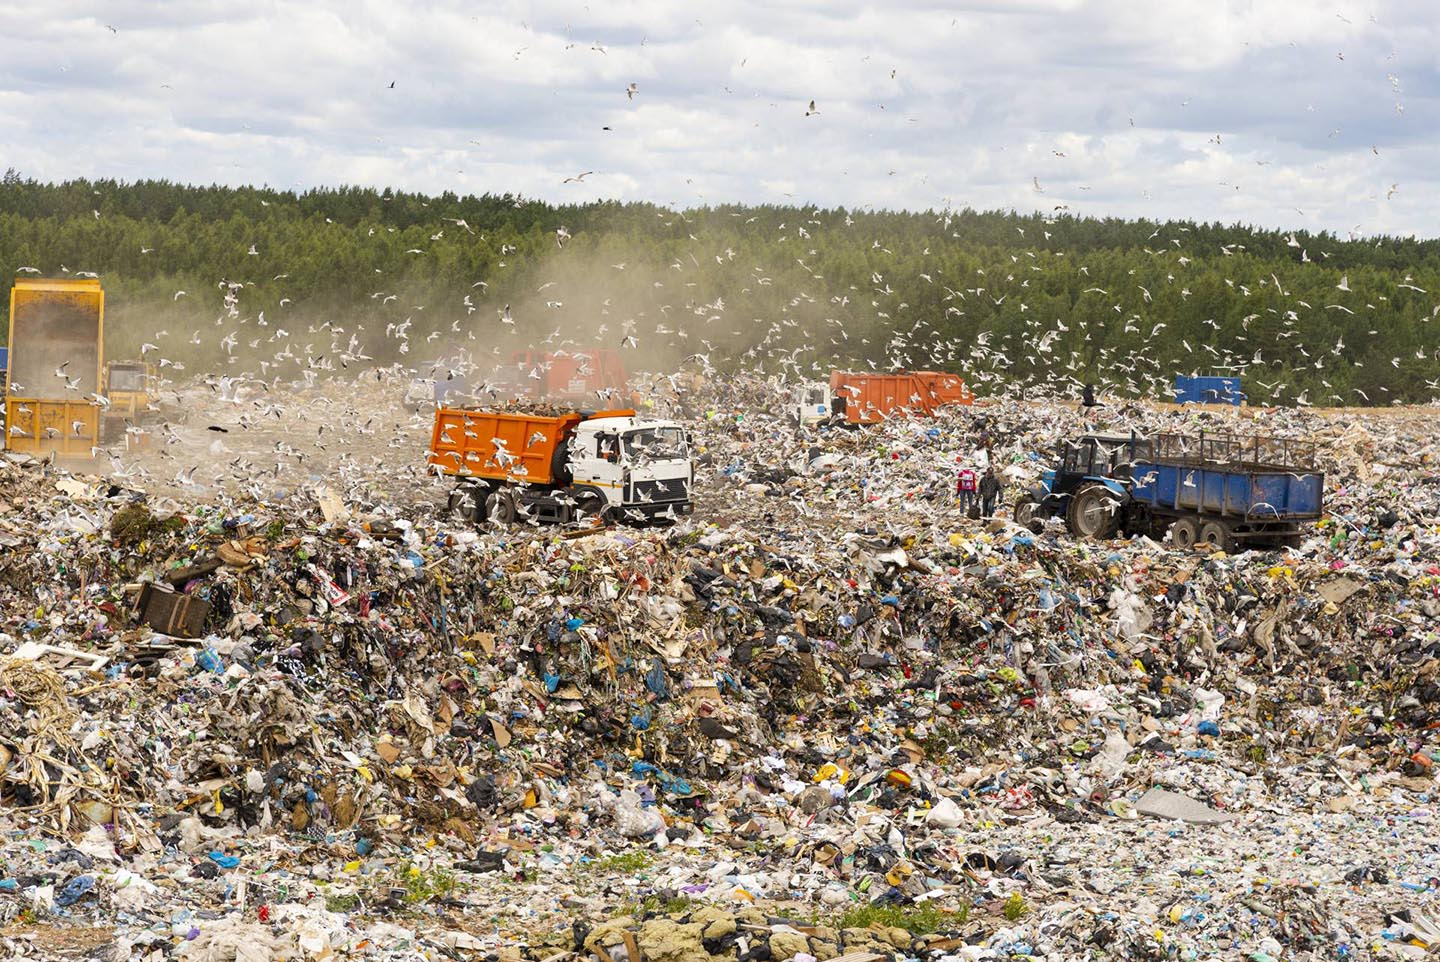 Canadian plastic recycling is far from good